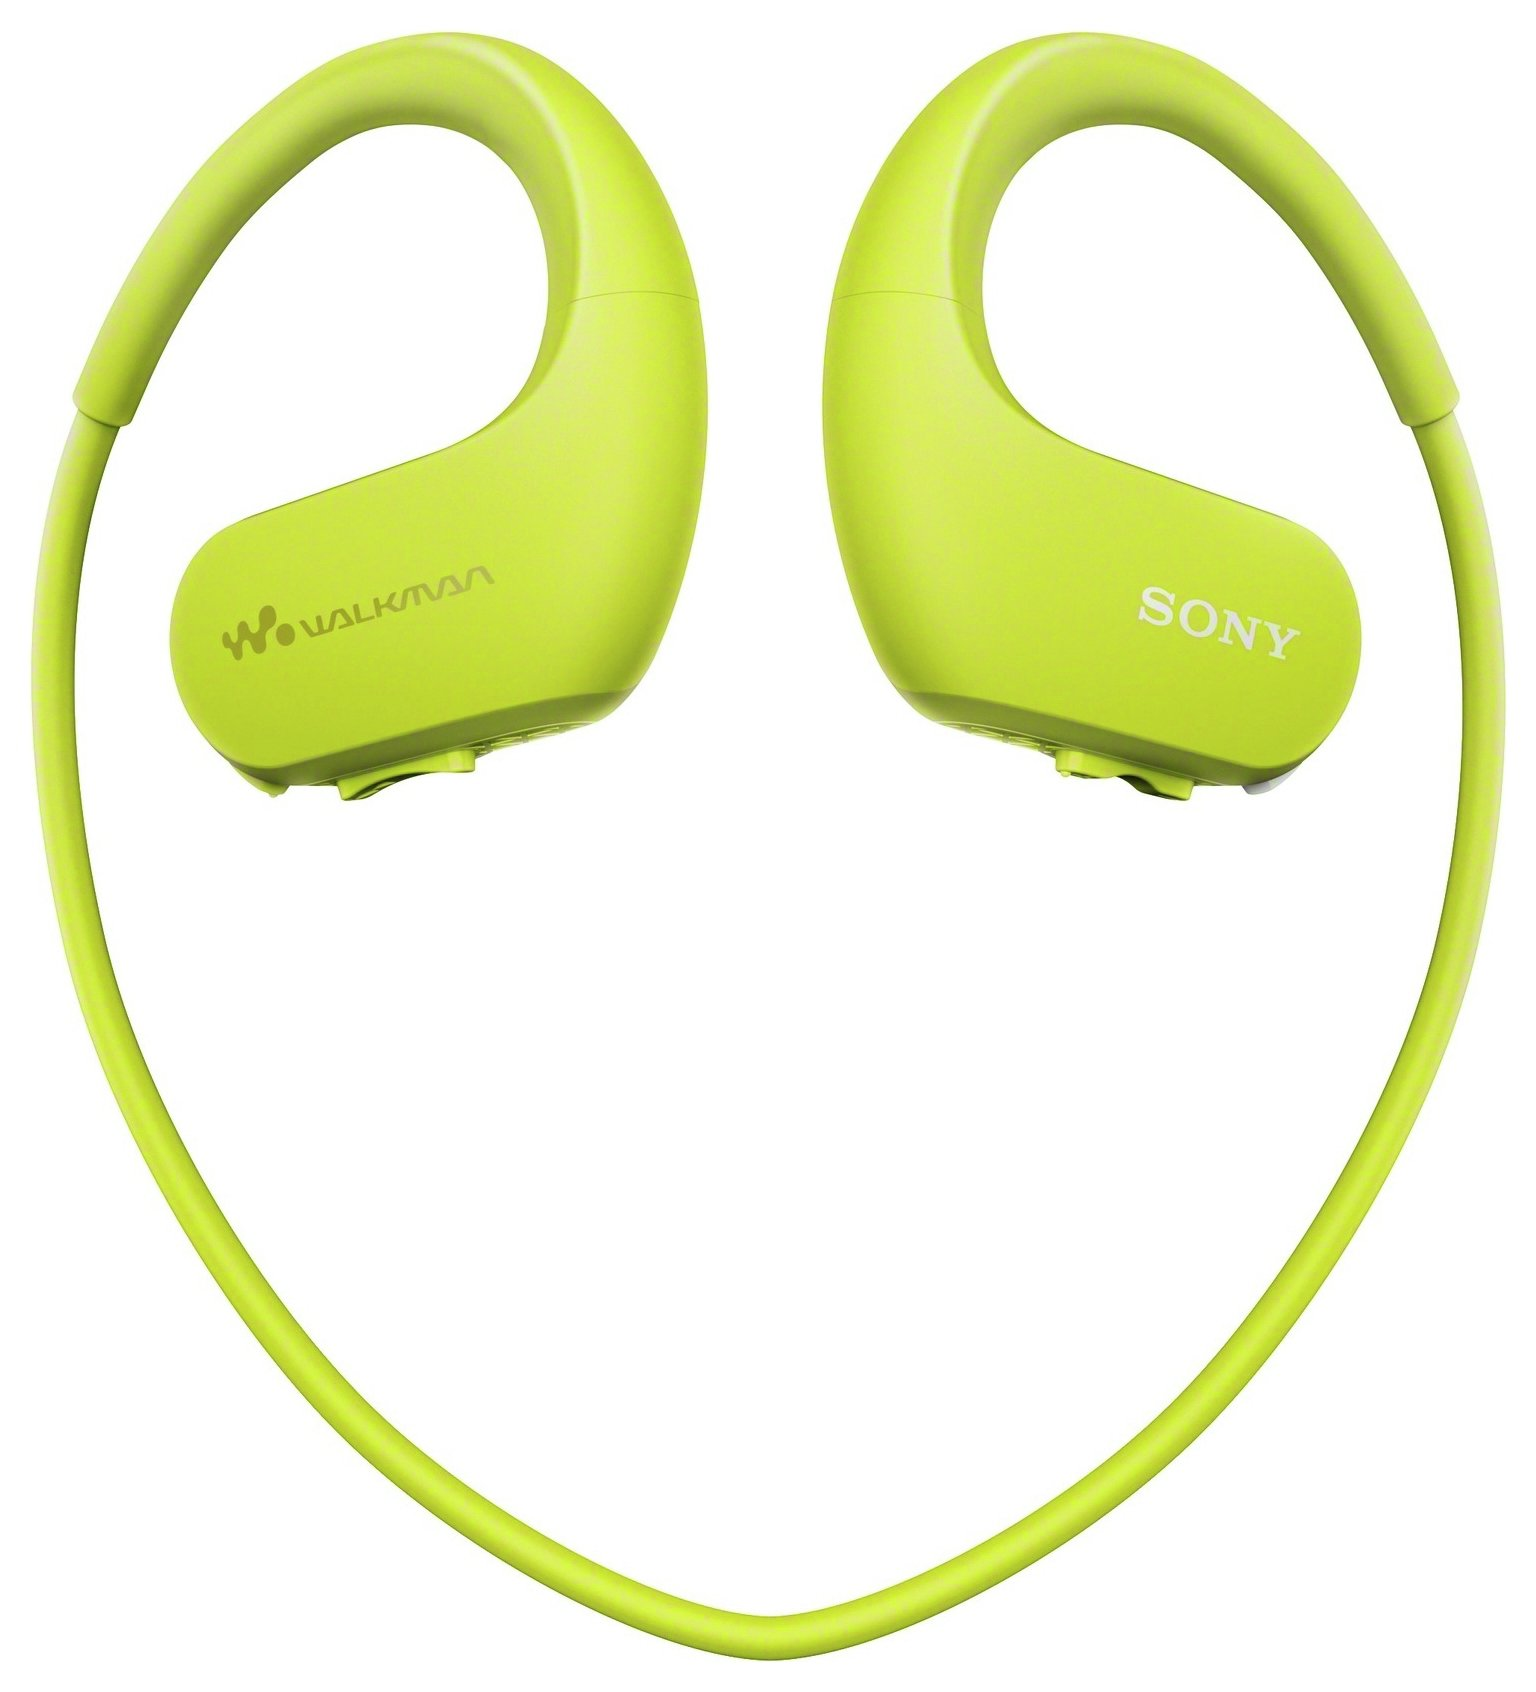 Sony - NW-WS413 Sports 4G Waterproof Walkman - Green